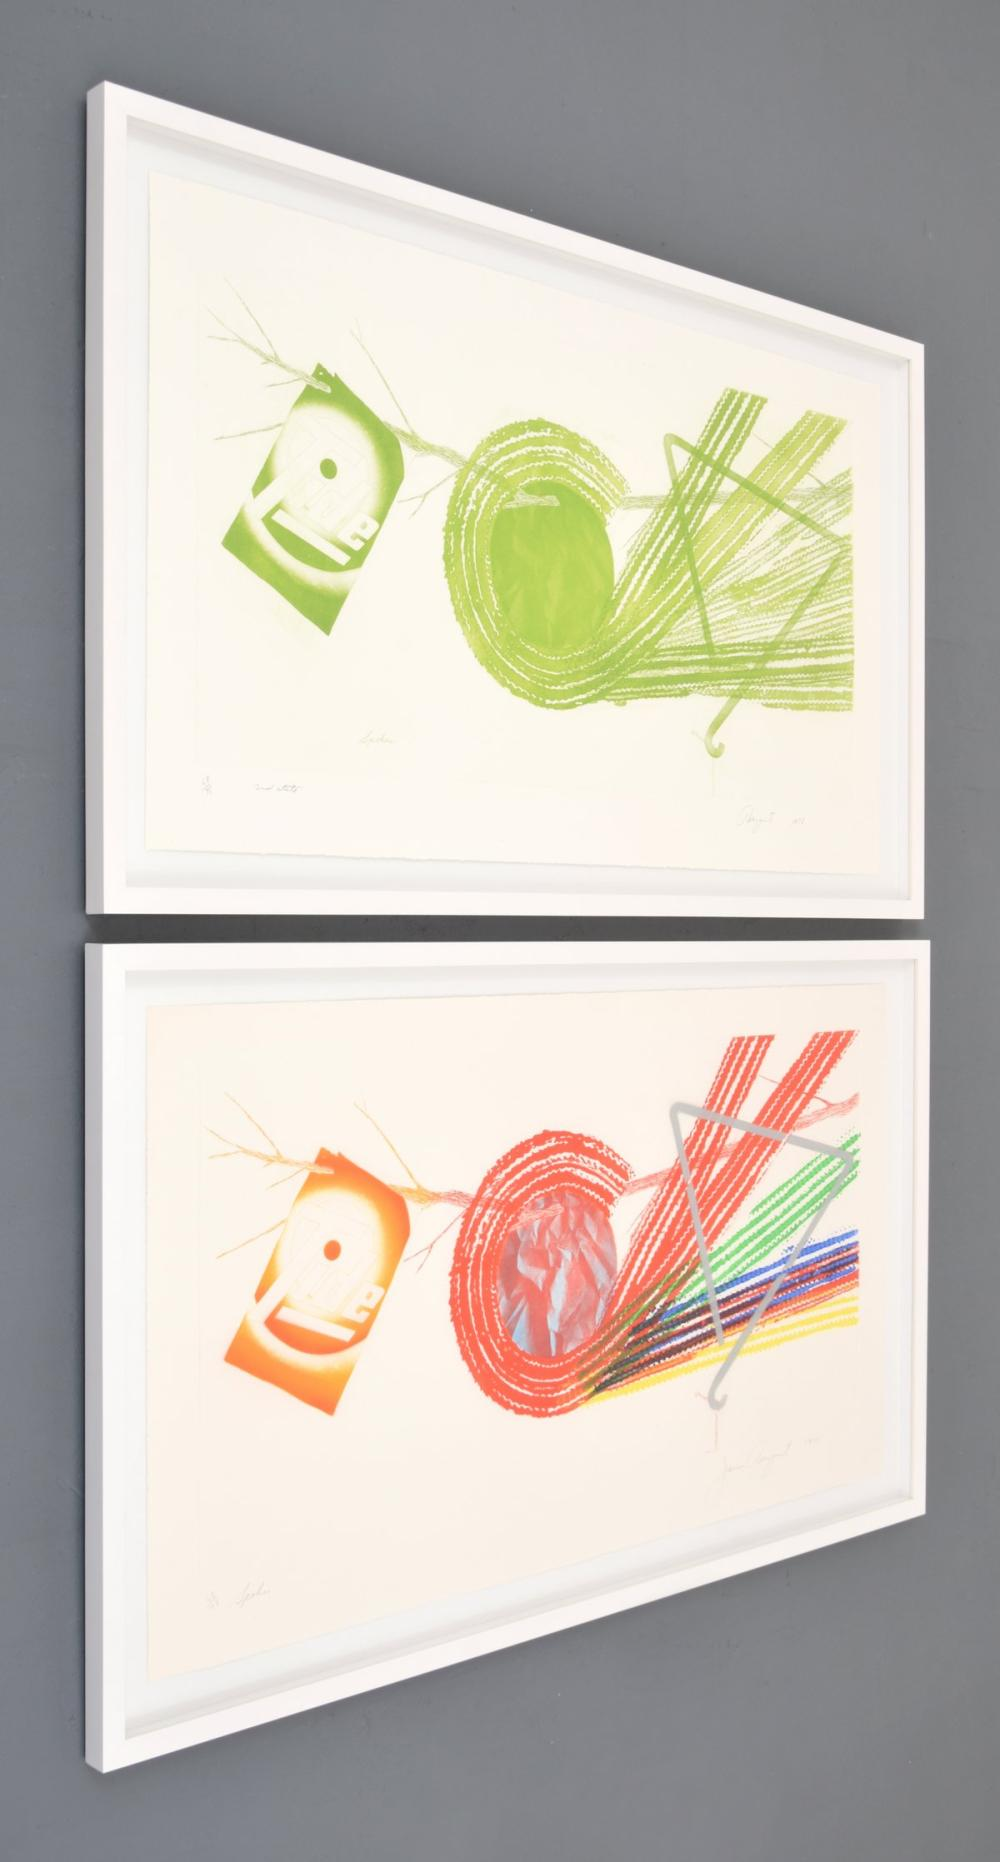 2 James Rosenquist SPOKES Etchings, Signed Editions